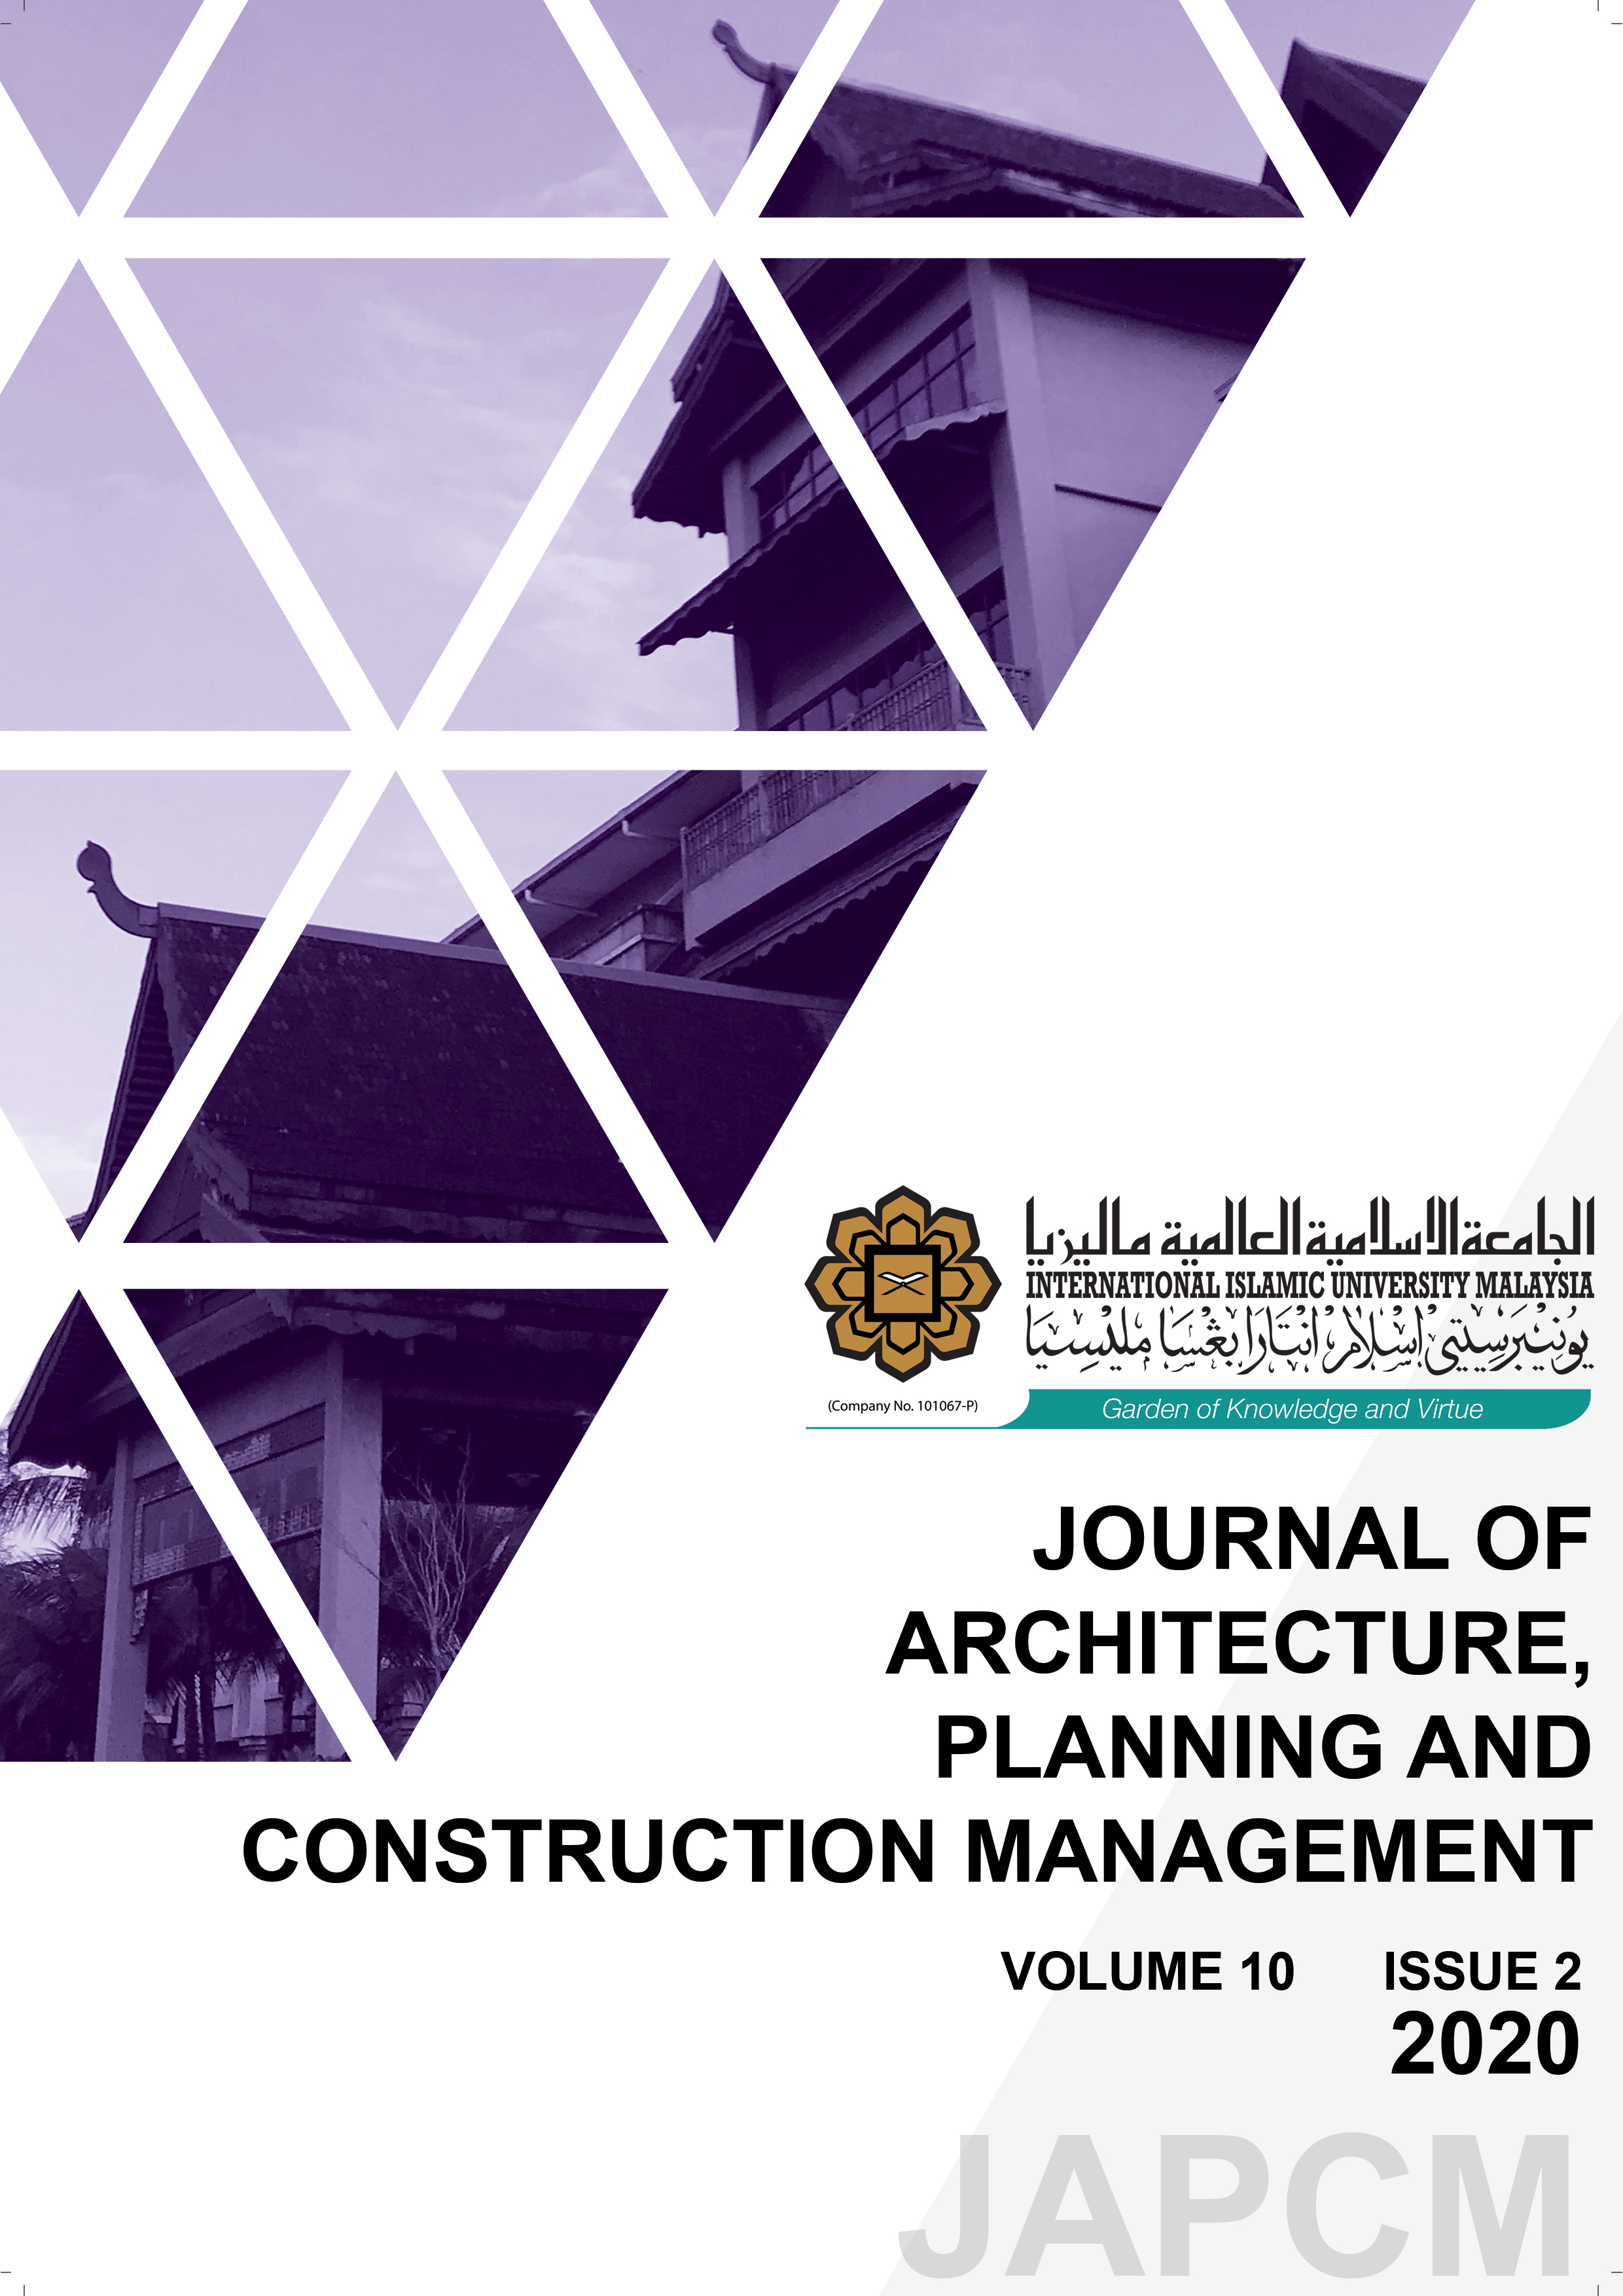 View Vol. 10 No. 2 (2020): Journal of Architecture, Planning and Construction Management